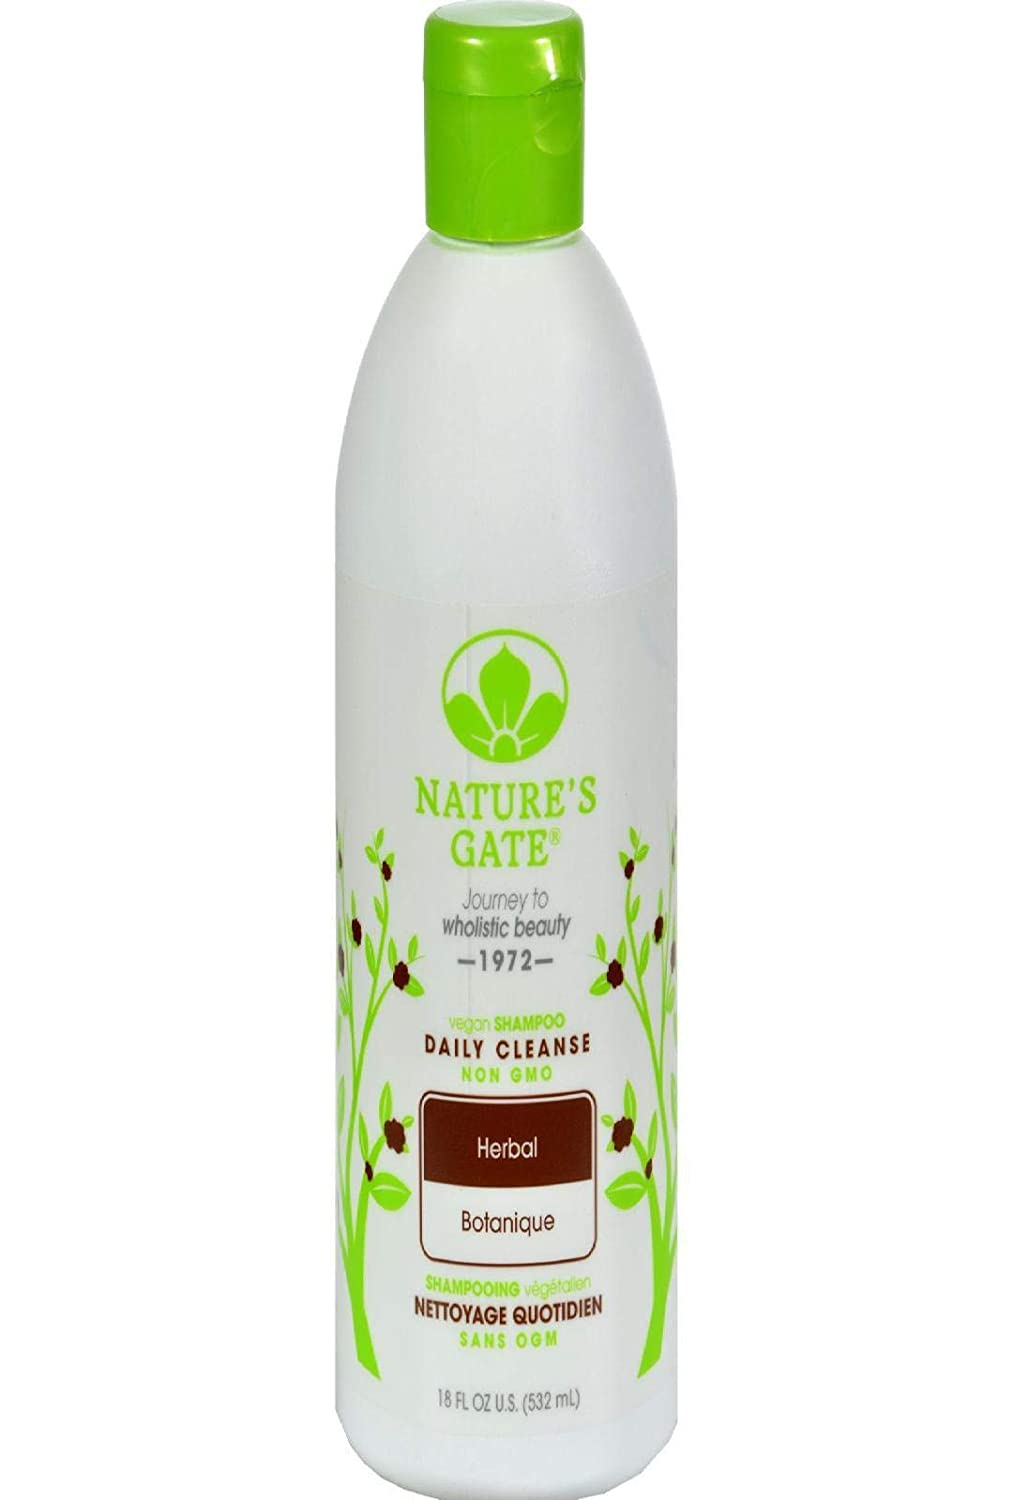 Nature's Gate Herbal Daily Cleansing Shampoo - 18 fl oz (Packaging May Vary)